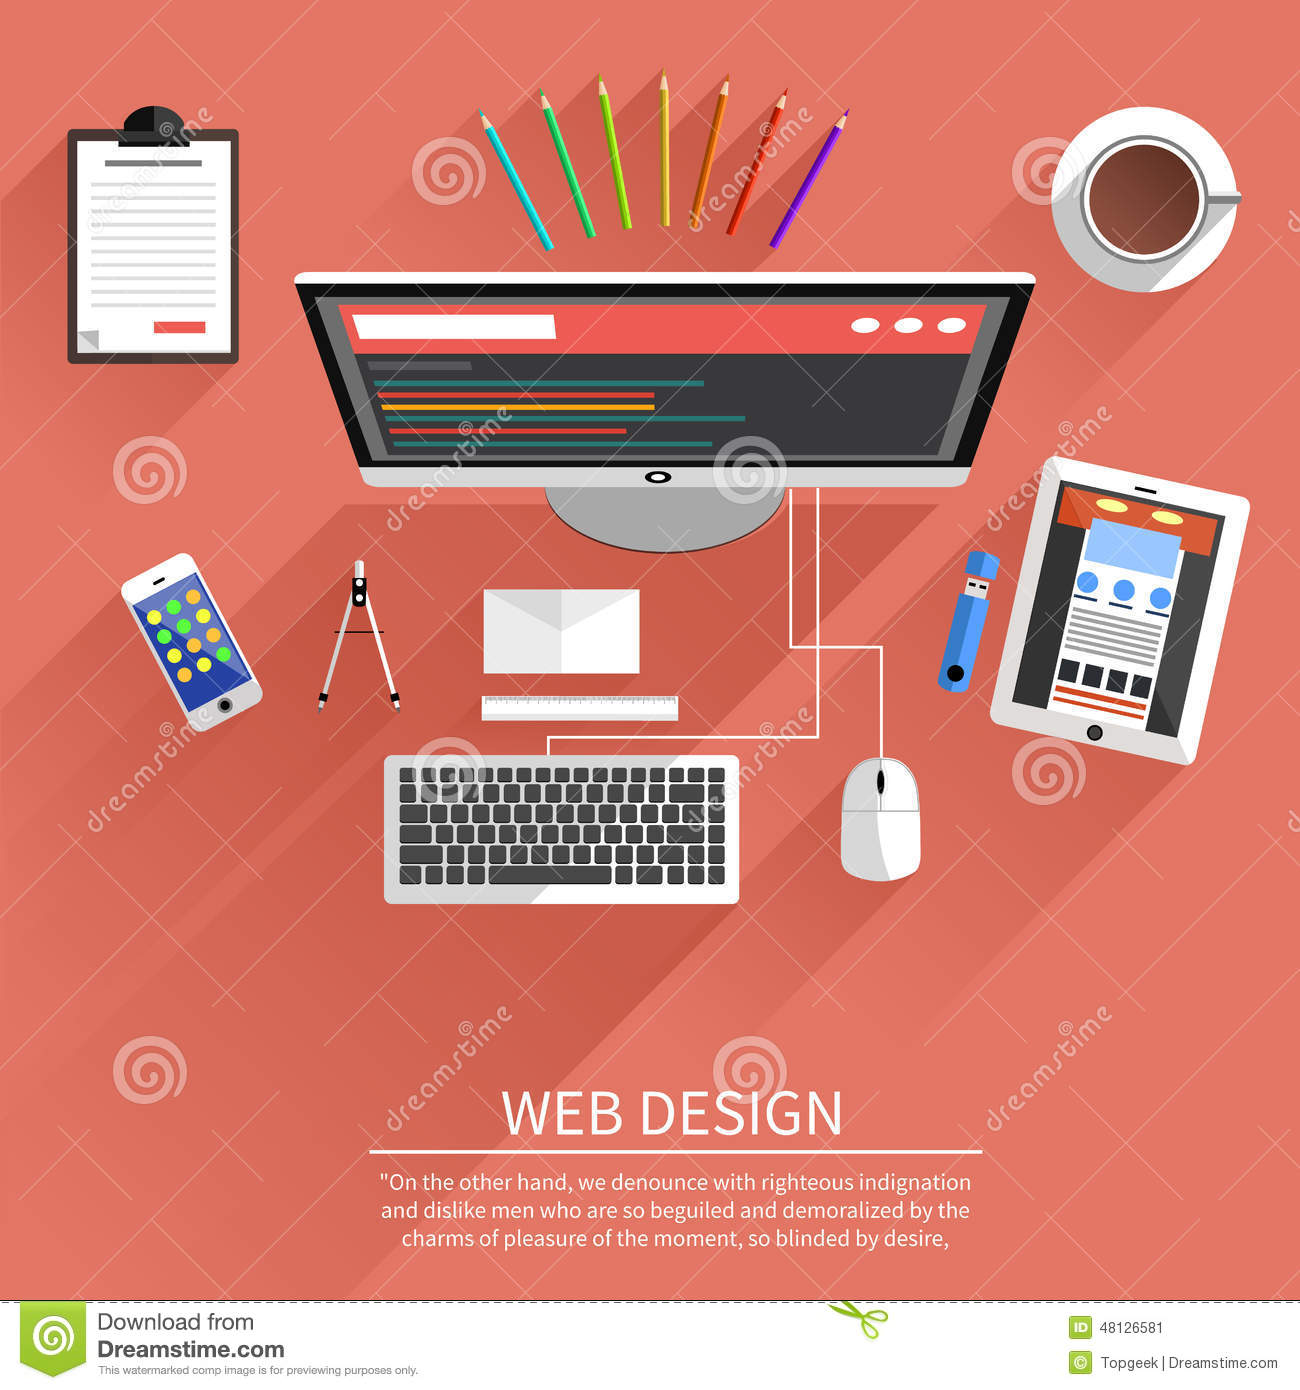 Web design program for design and architecture cartoon for Innenraum designer programm